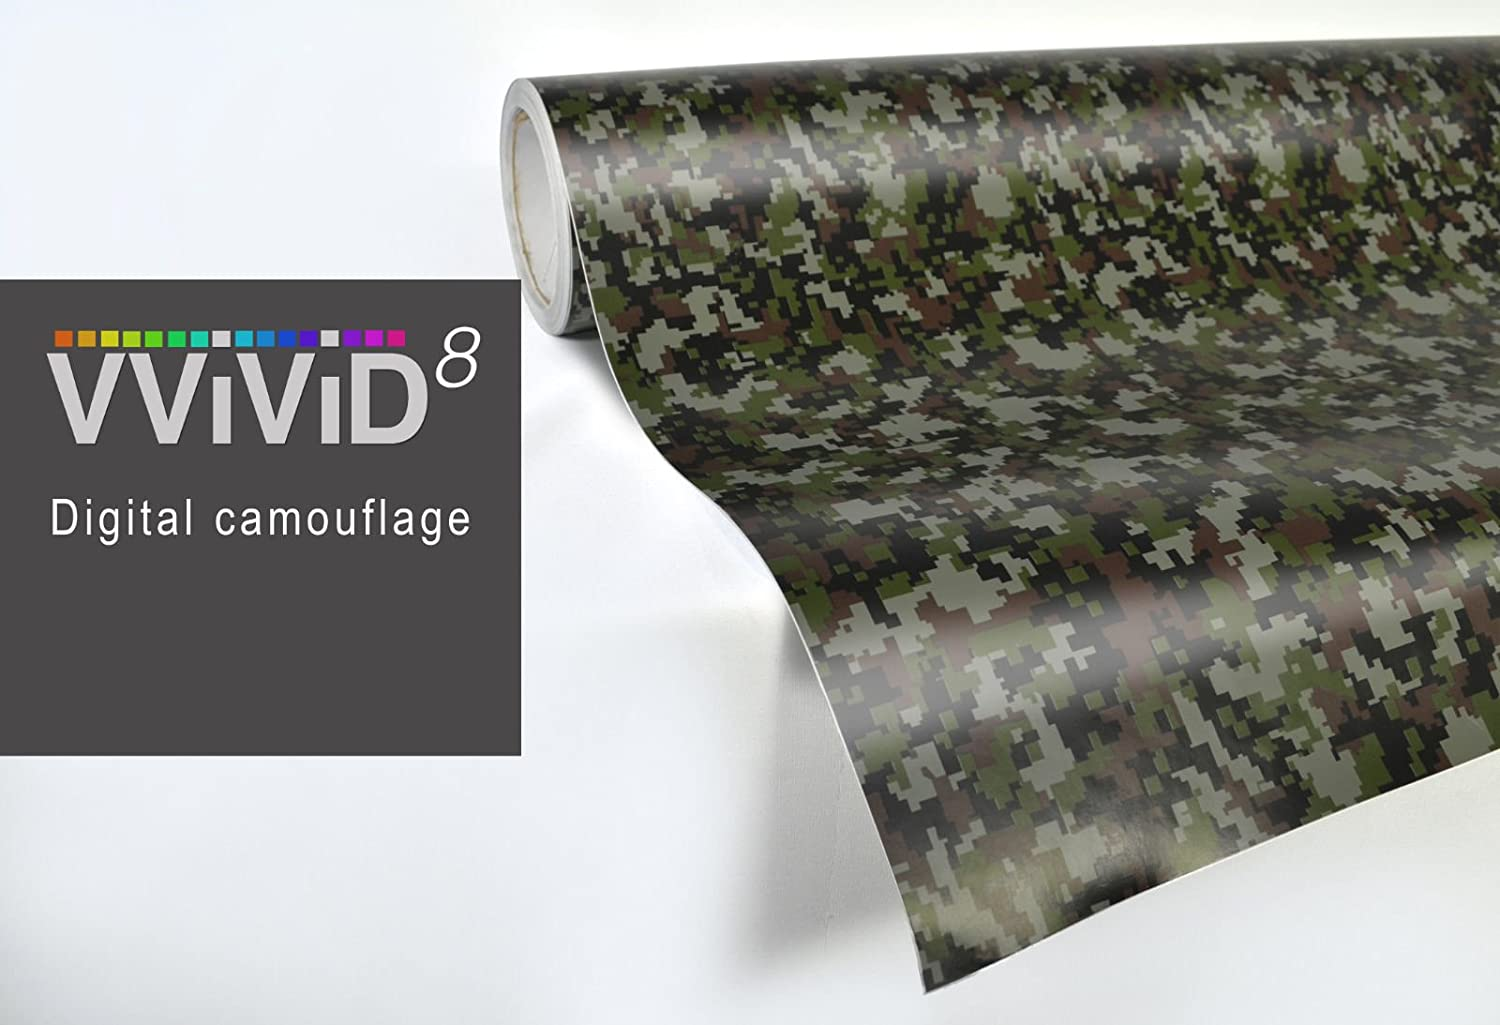 VViViD Digital Camouflage Vinyl Wrap Film for DIY No Mess Easy to Install Air-Release Adhesive (17.75 Inch x 5ft)